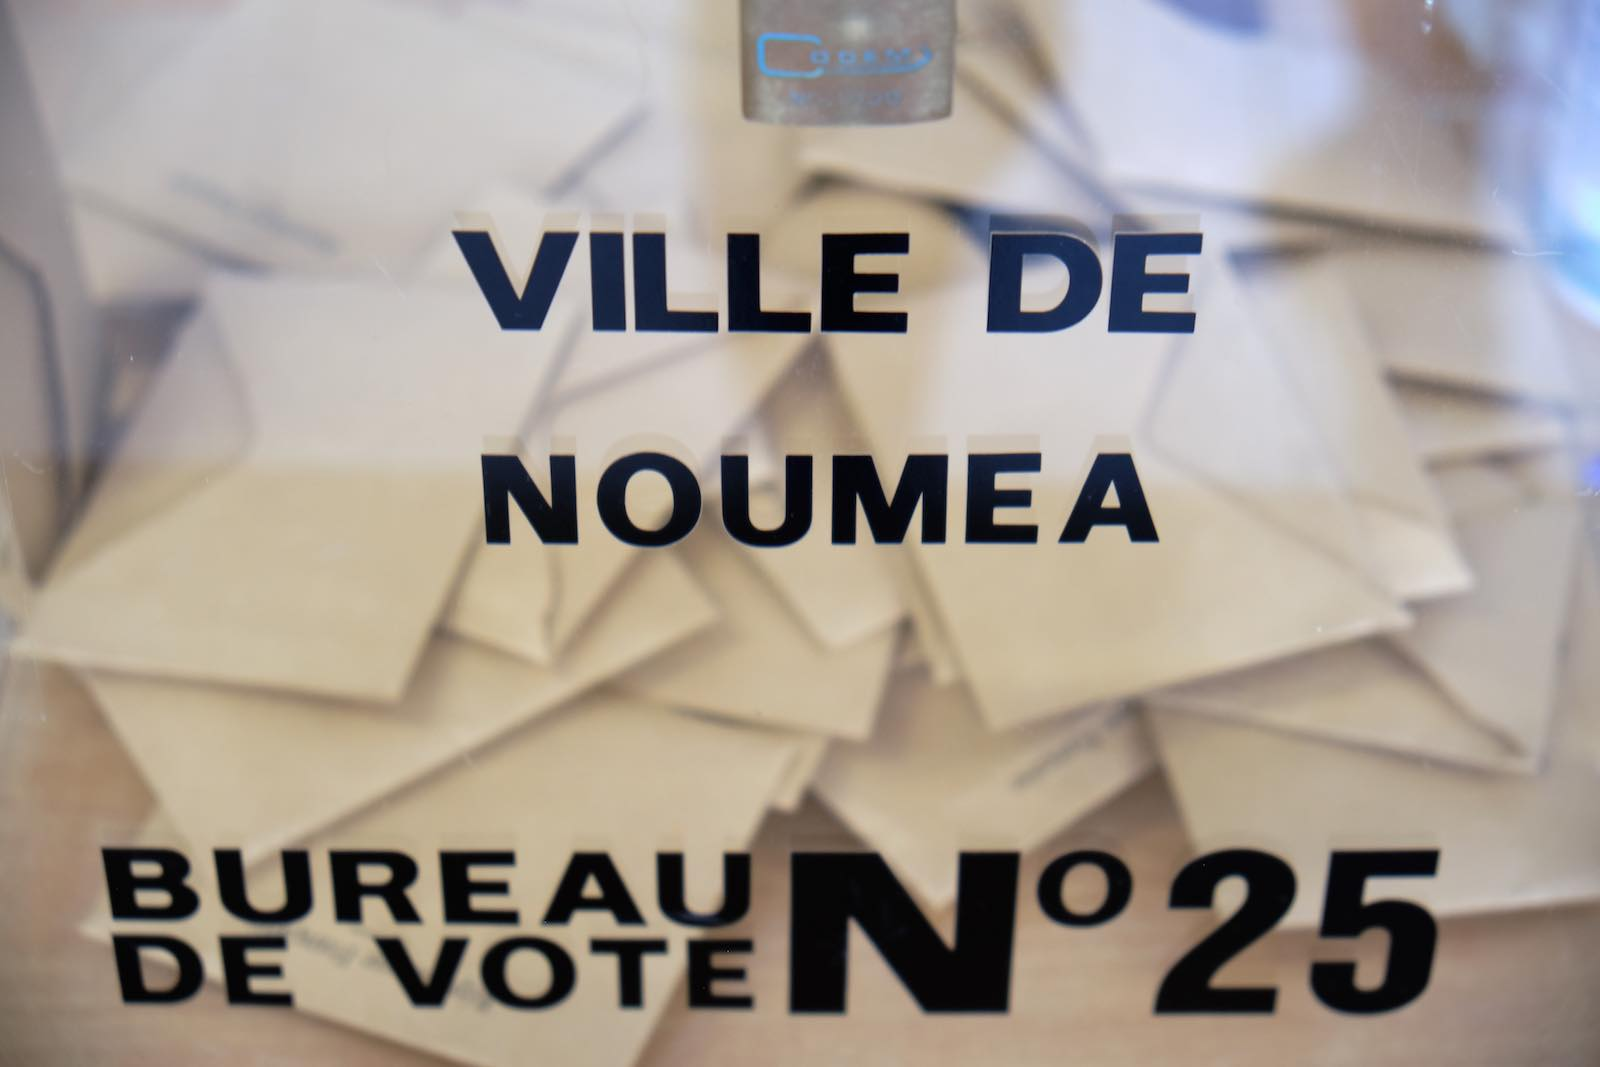 Ballots in the Magenta district of Noumea, New Caledonia during the first round of mayoral elections in France in March (Theo Rouby/AFP/Getty Images)